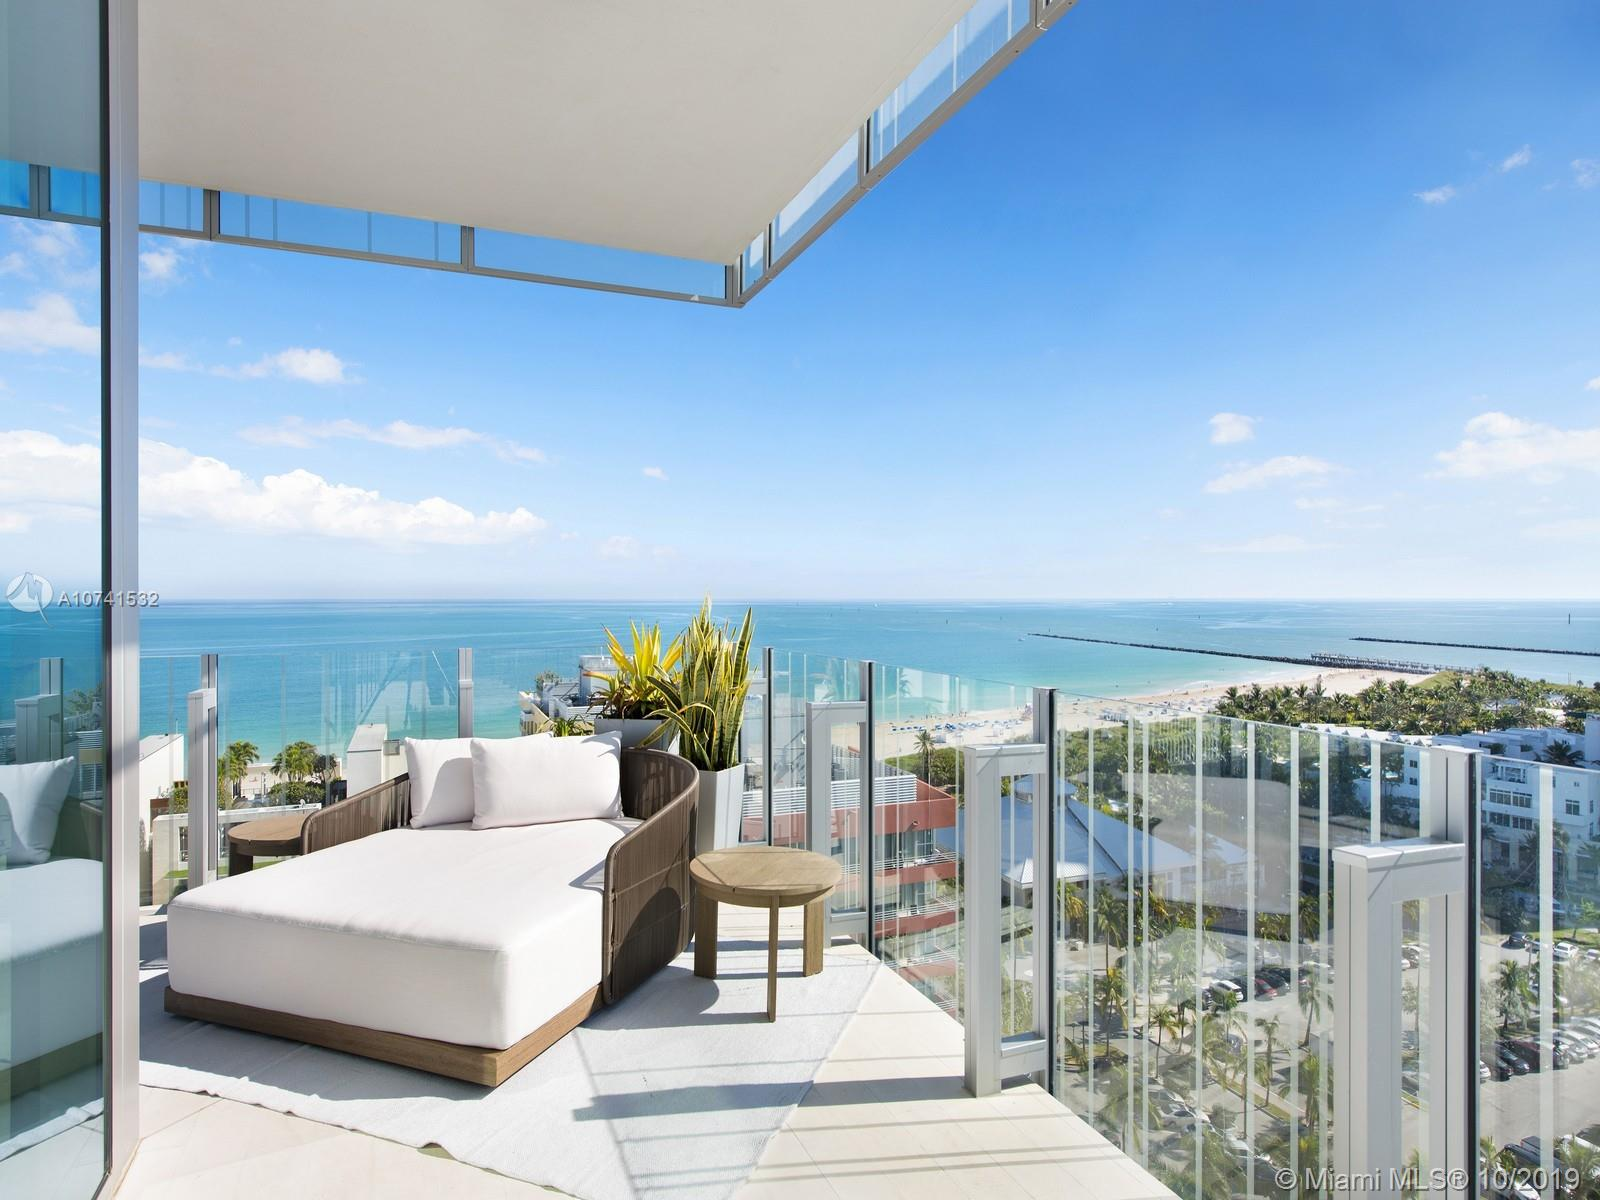 """GLASS at 120 Ocean Drive designed by Rene Gonzalez is true exclusive luxury living. One of only 10 residences, this spacious 15th floor offers stunning 360 views of Miami Beach, ocean, city and intracoastal. Residence features include Calcutta marble kitchen with Gaggenau and Sub-Zero appliances, oak wood floors with floating walls and master bathroom made of floor to ceiling Arrabescato marble. Estate manager, exclusive beach and 24 hr security and concierge services. """"It's a building that tends to disappear"""", said architect Rene Gonzalez. Located in hot South of Fifth neighborhood in walking distance to some of the best restaurants and shopping."""